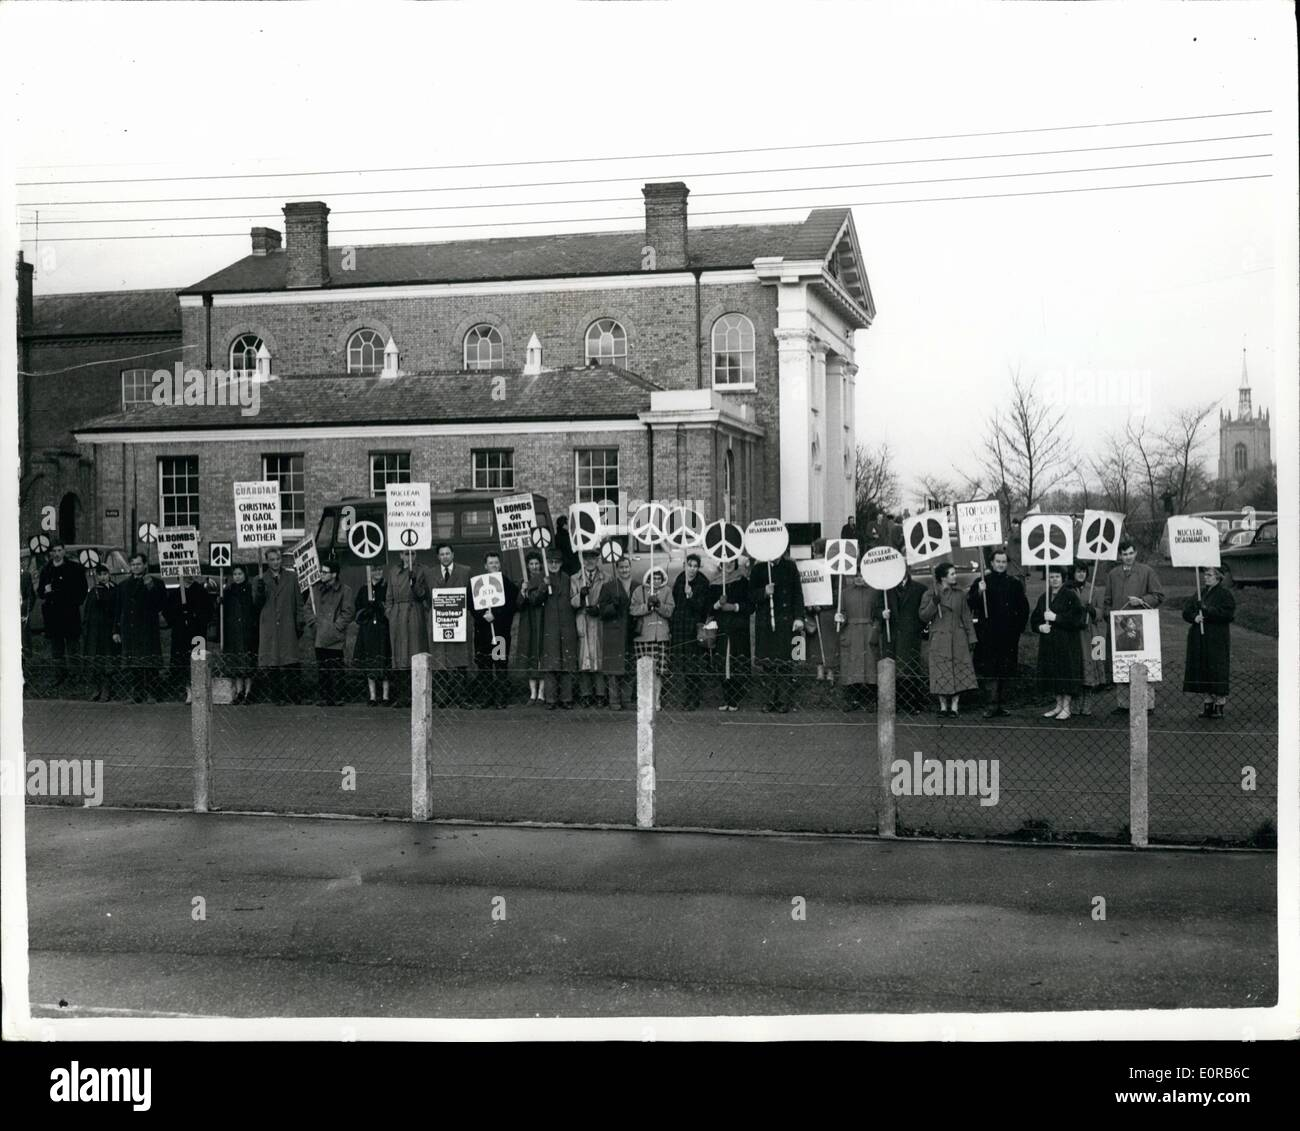 Dec. 12, 1958 - 37 Say They Won't Give Peace Bond: Forty-four rocket site marchers were ordered yesterday to enter into a recognisance of 10 to keep the peace for a year. But 37 of them said they could not agree to the order. Col. J.H. Boag,chairman of the magistrates at Swaffham, Norfolk told them: ''Such recognisances are to be entered into within seven days. On failure to comply with the order, you will go to prison for 14 days''. Thirty-two men and 13 women were charged with obstructing the police. They were arrested during demonstrations at a Norfolk rocket site on December 20 - Stock Image